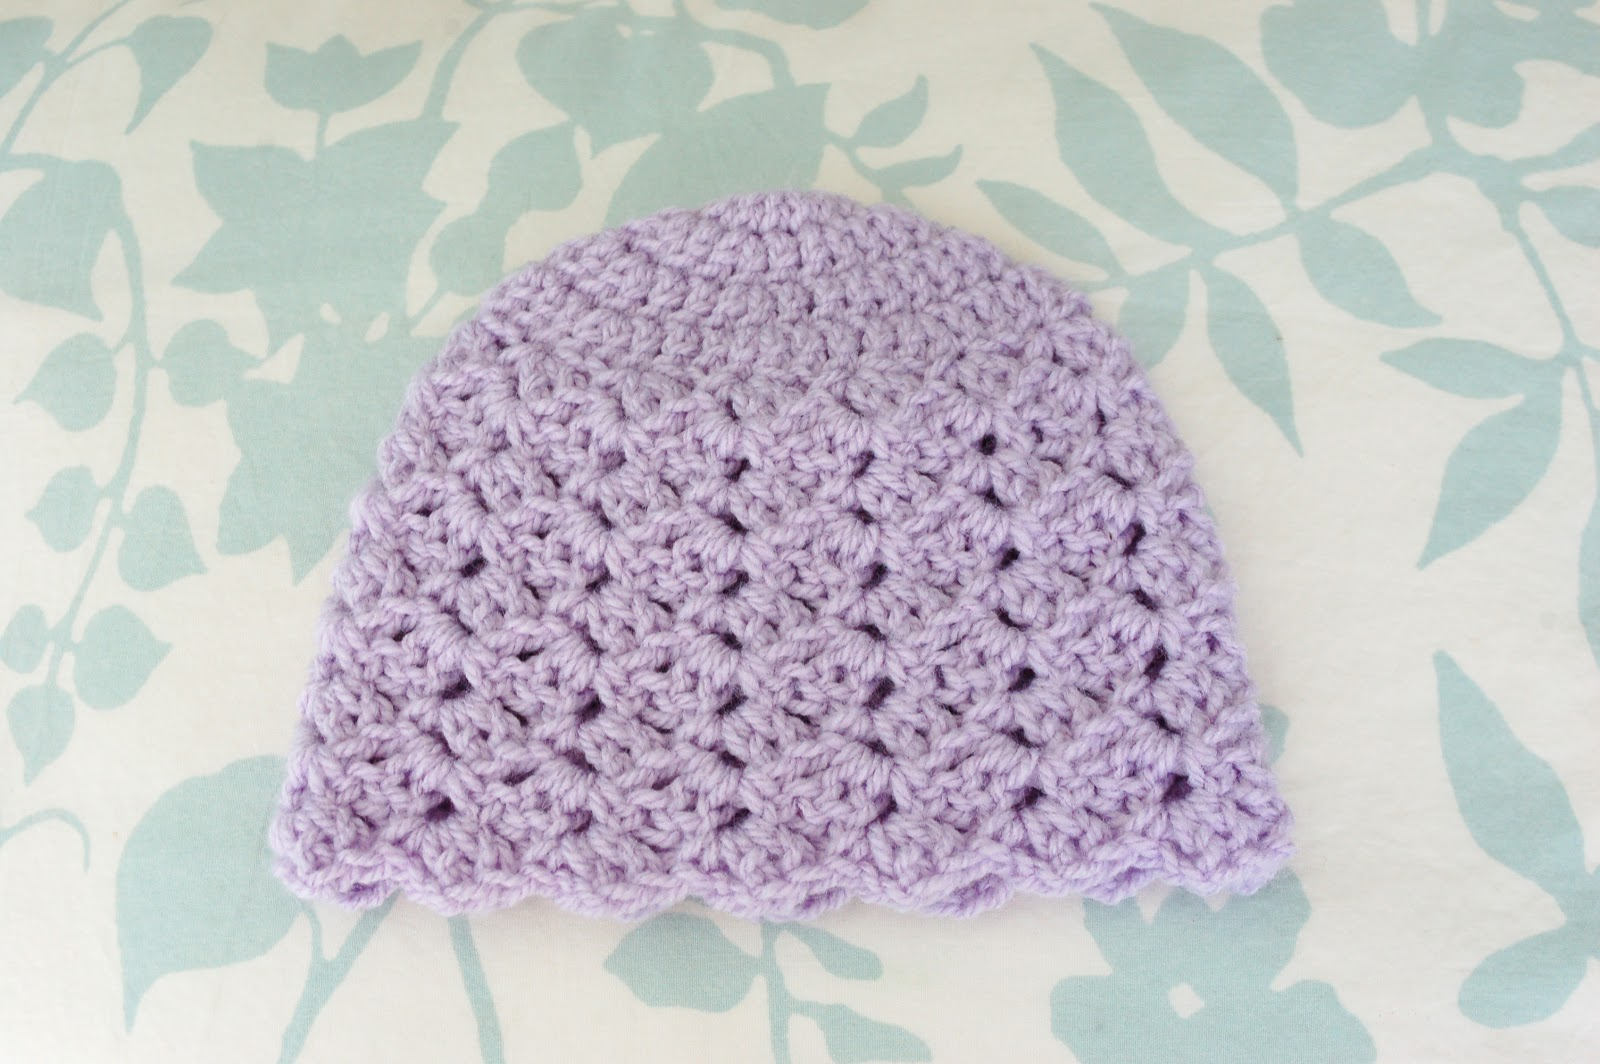 Crochet Patterns Newborn Hats : dc double crochet sc single crochet sl st slip stitch